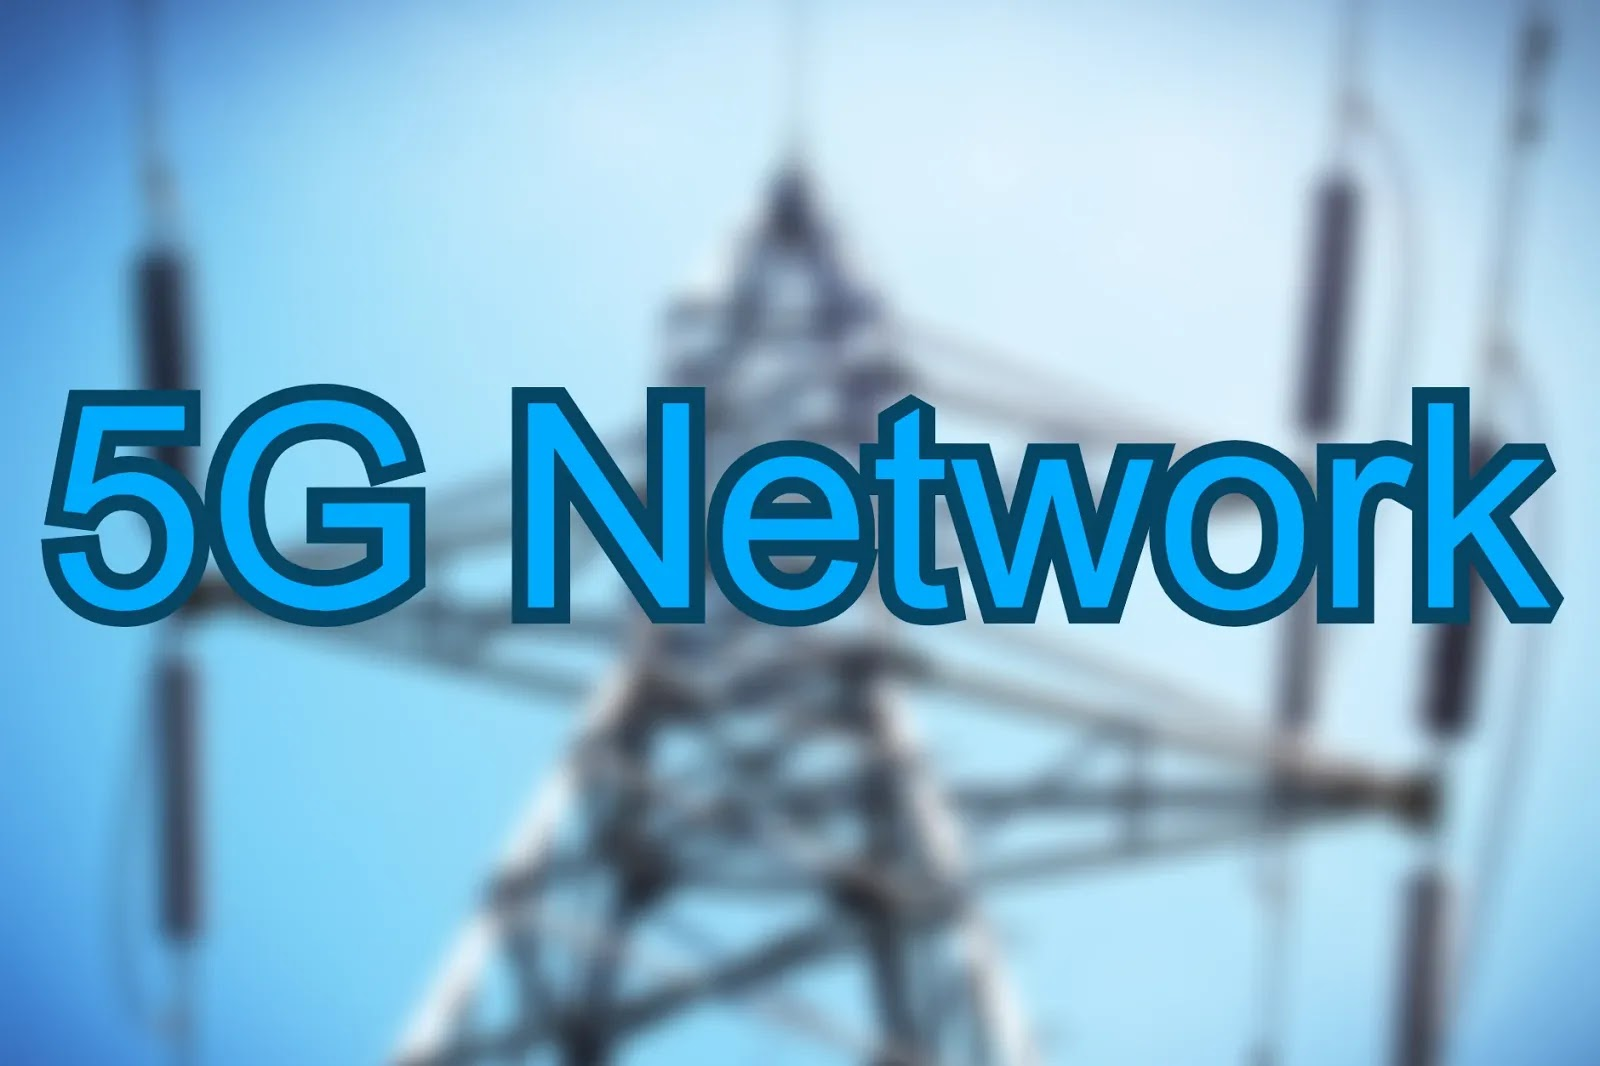 When will 5G Network be accessible in India?